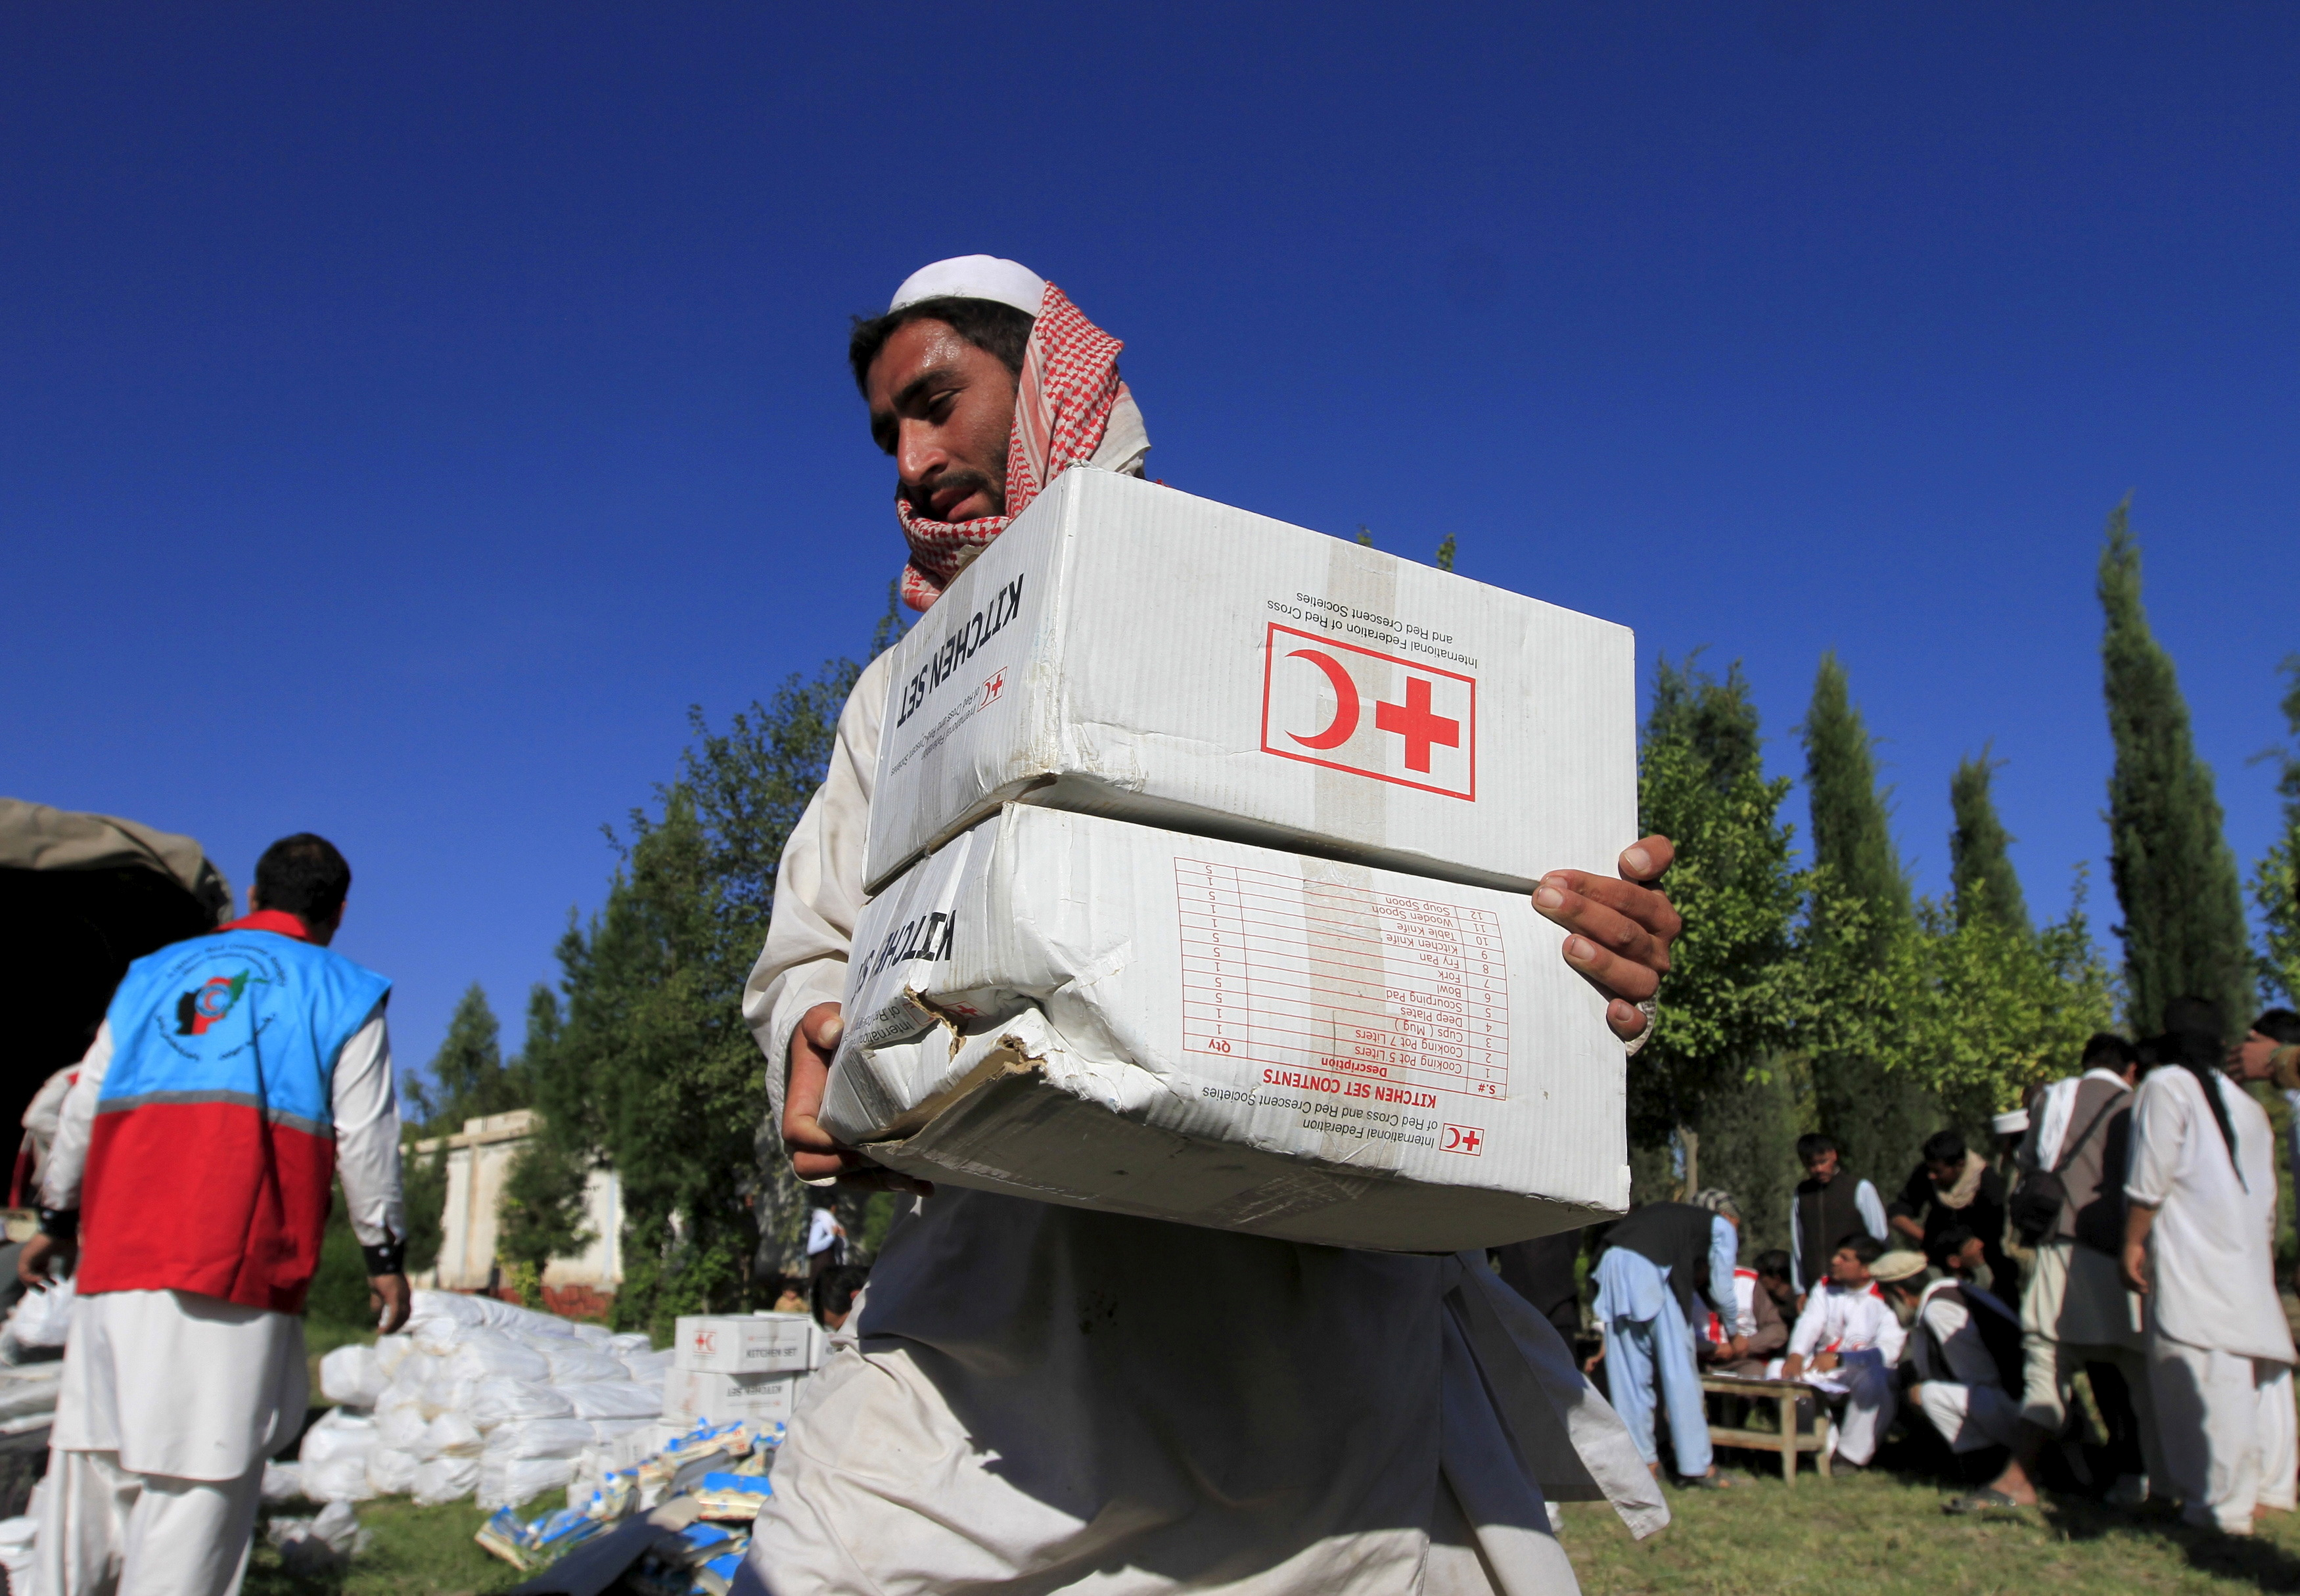 An Afghan man receives aid from the International Federation of the Red Cross and Red Crescent Societies after an earthquake, in Behsud district of Jalalabad province, Afghanistan October 28, 2015. REUTERS/Parwiz